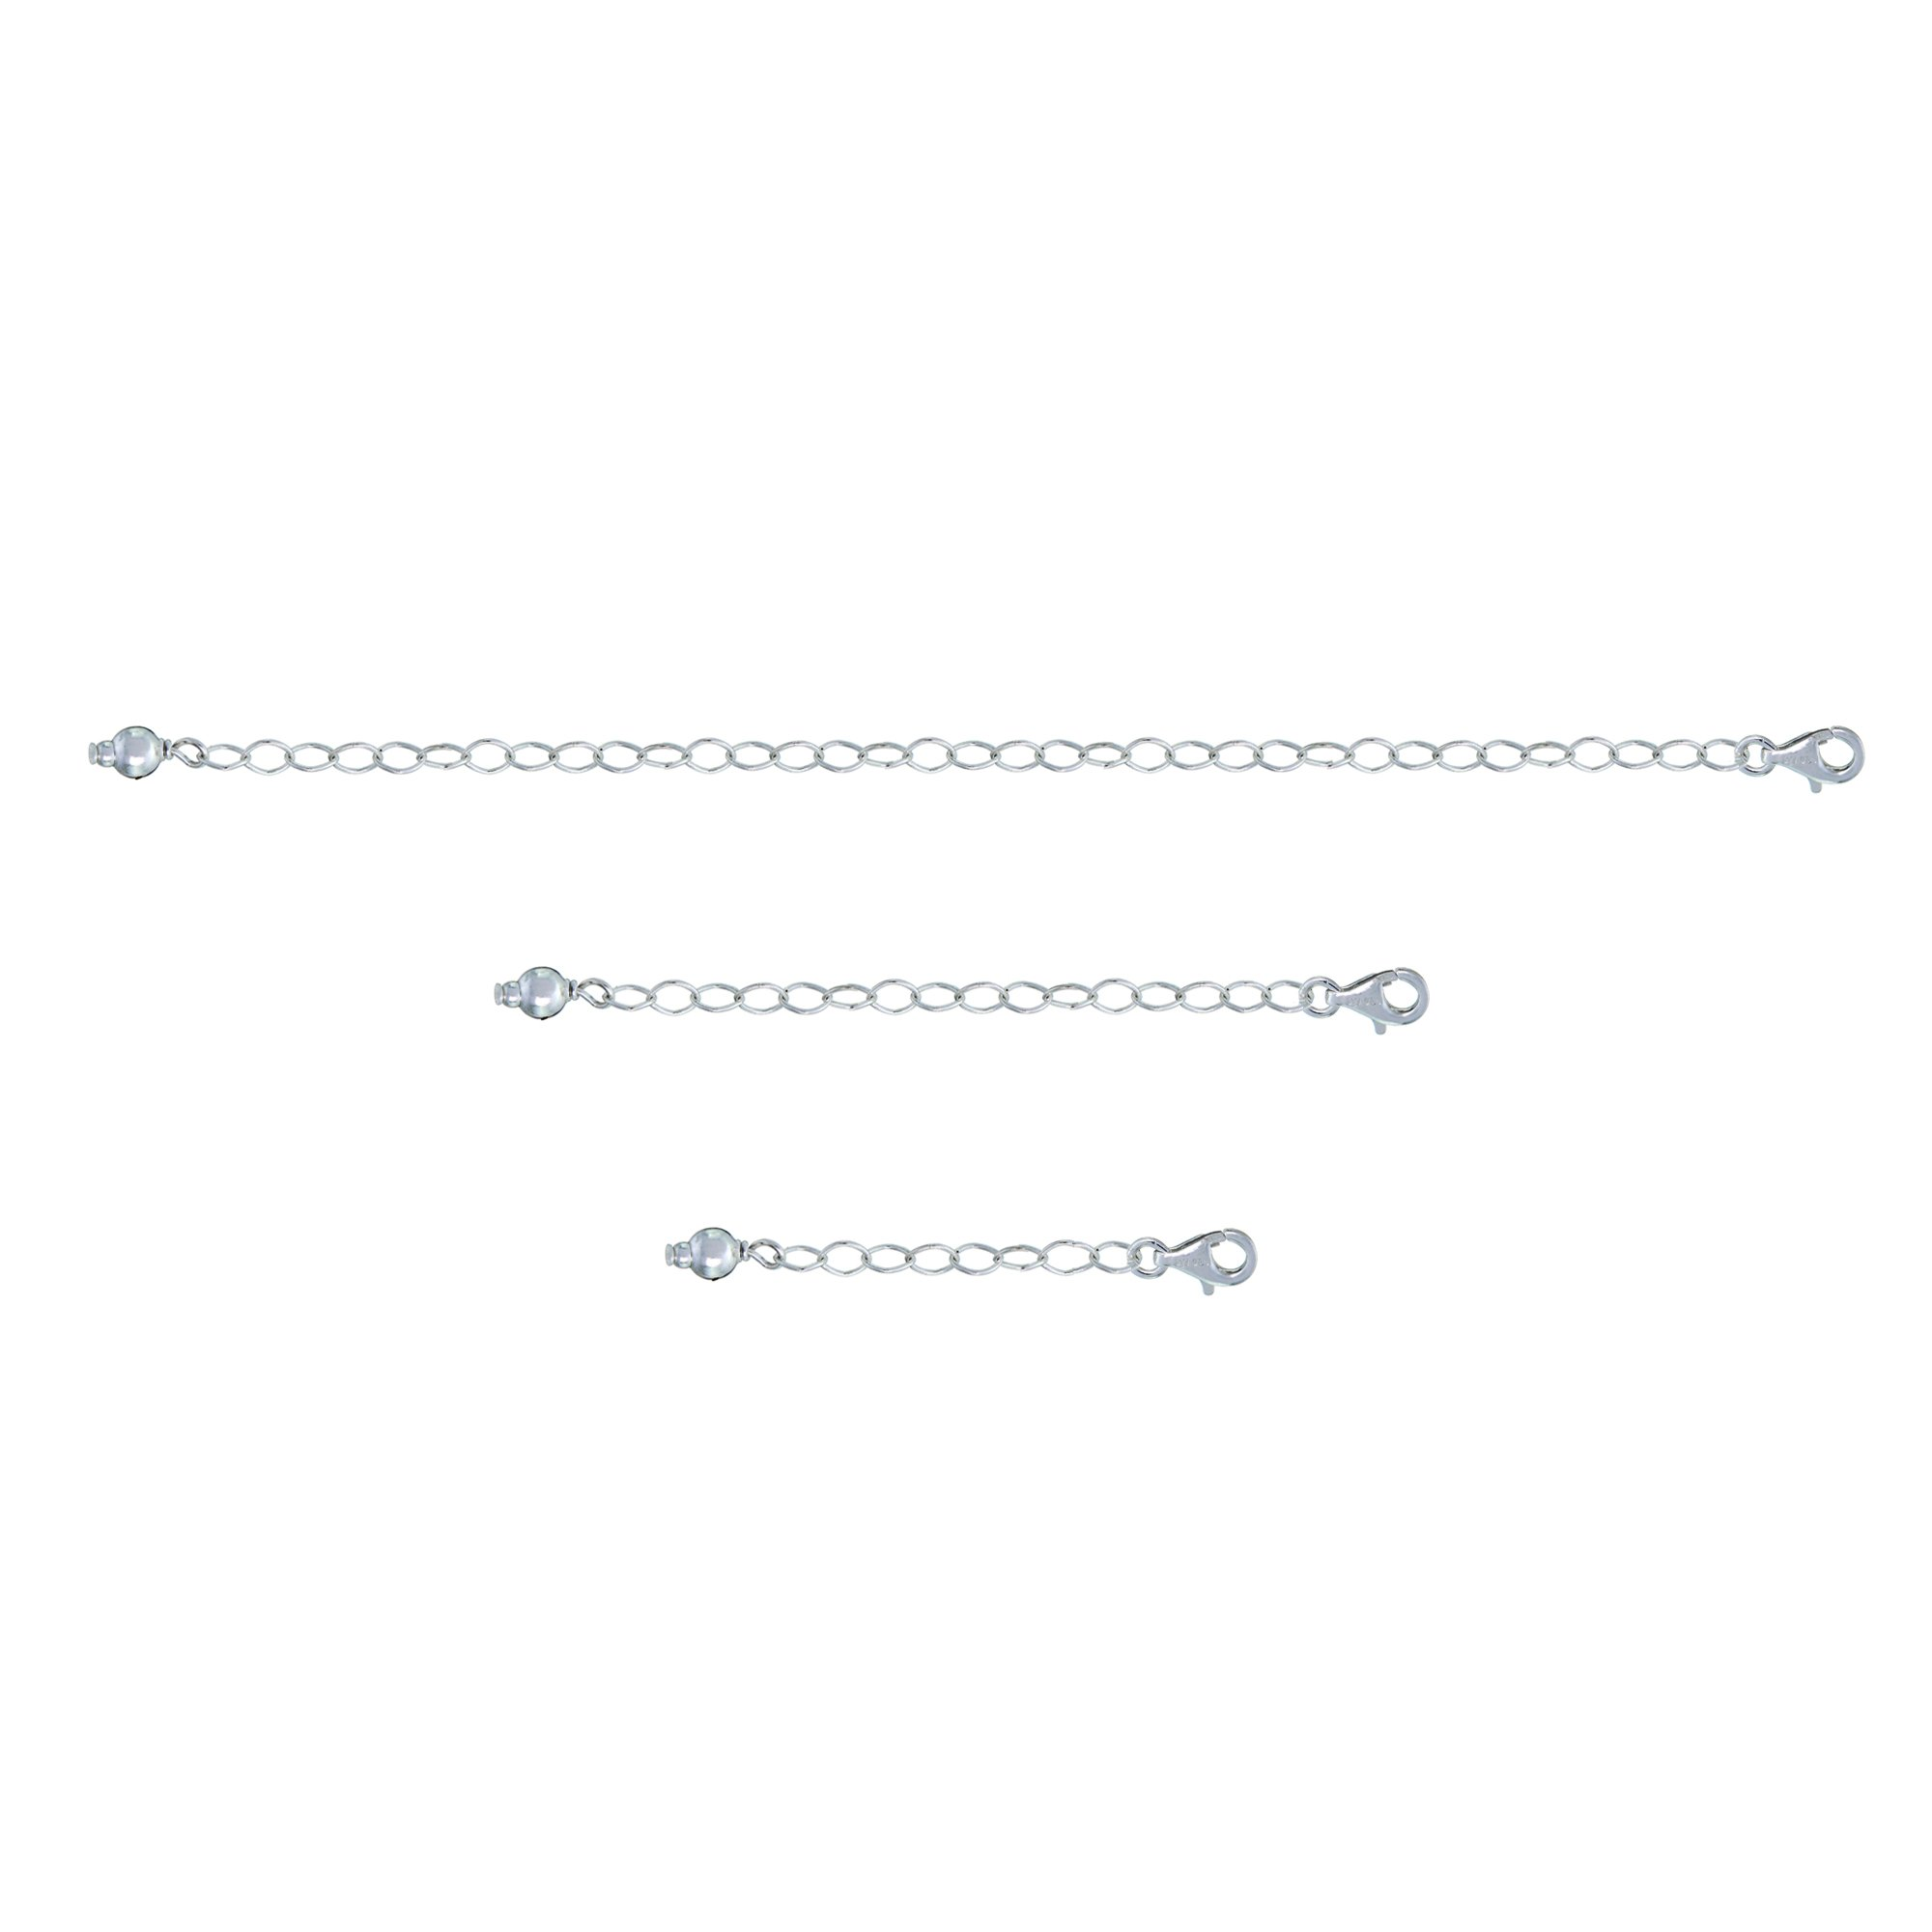 GemStar USA Sterling Silver Pendant Necklace Bracelet Anklet Chain Extenders for Necklace, 1'' 2'' and 4''